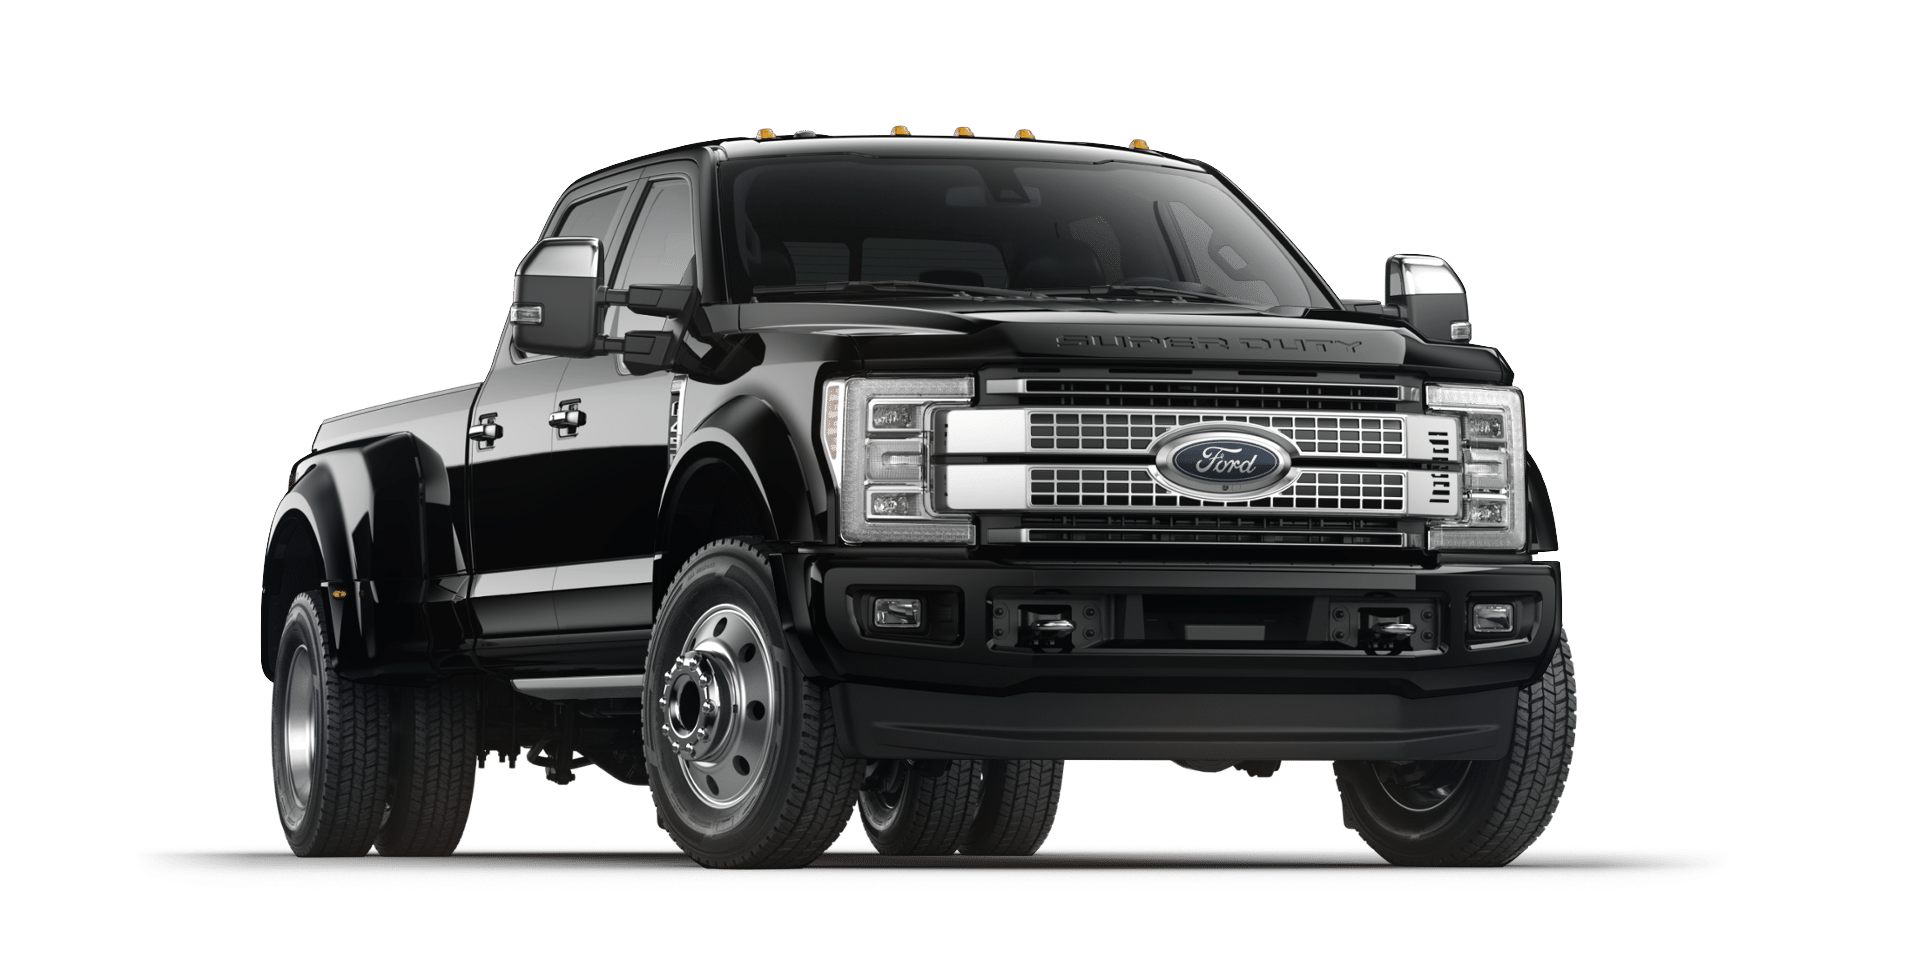 Darth Vader Would Drive A 2017 F 450 Platinum Drw Ford